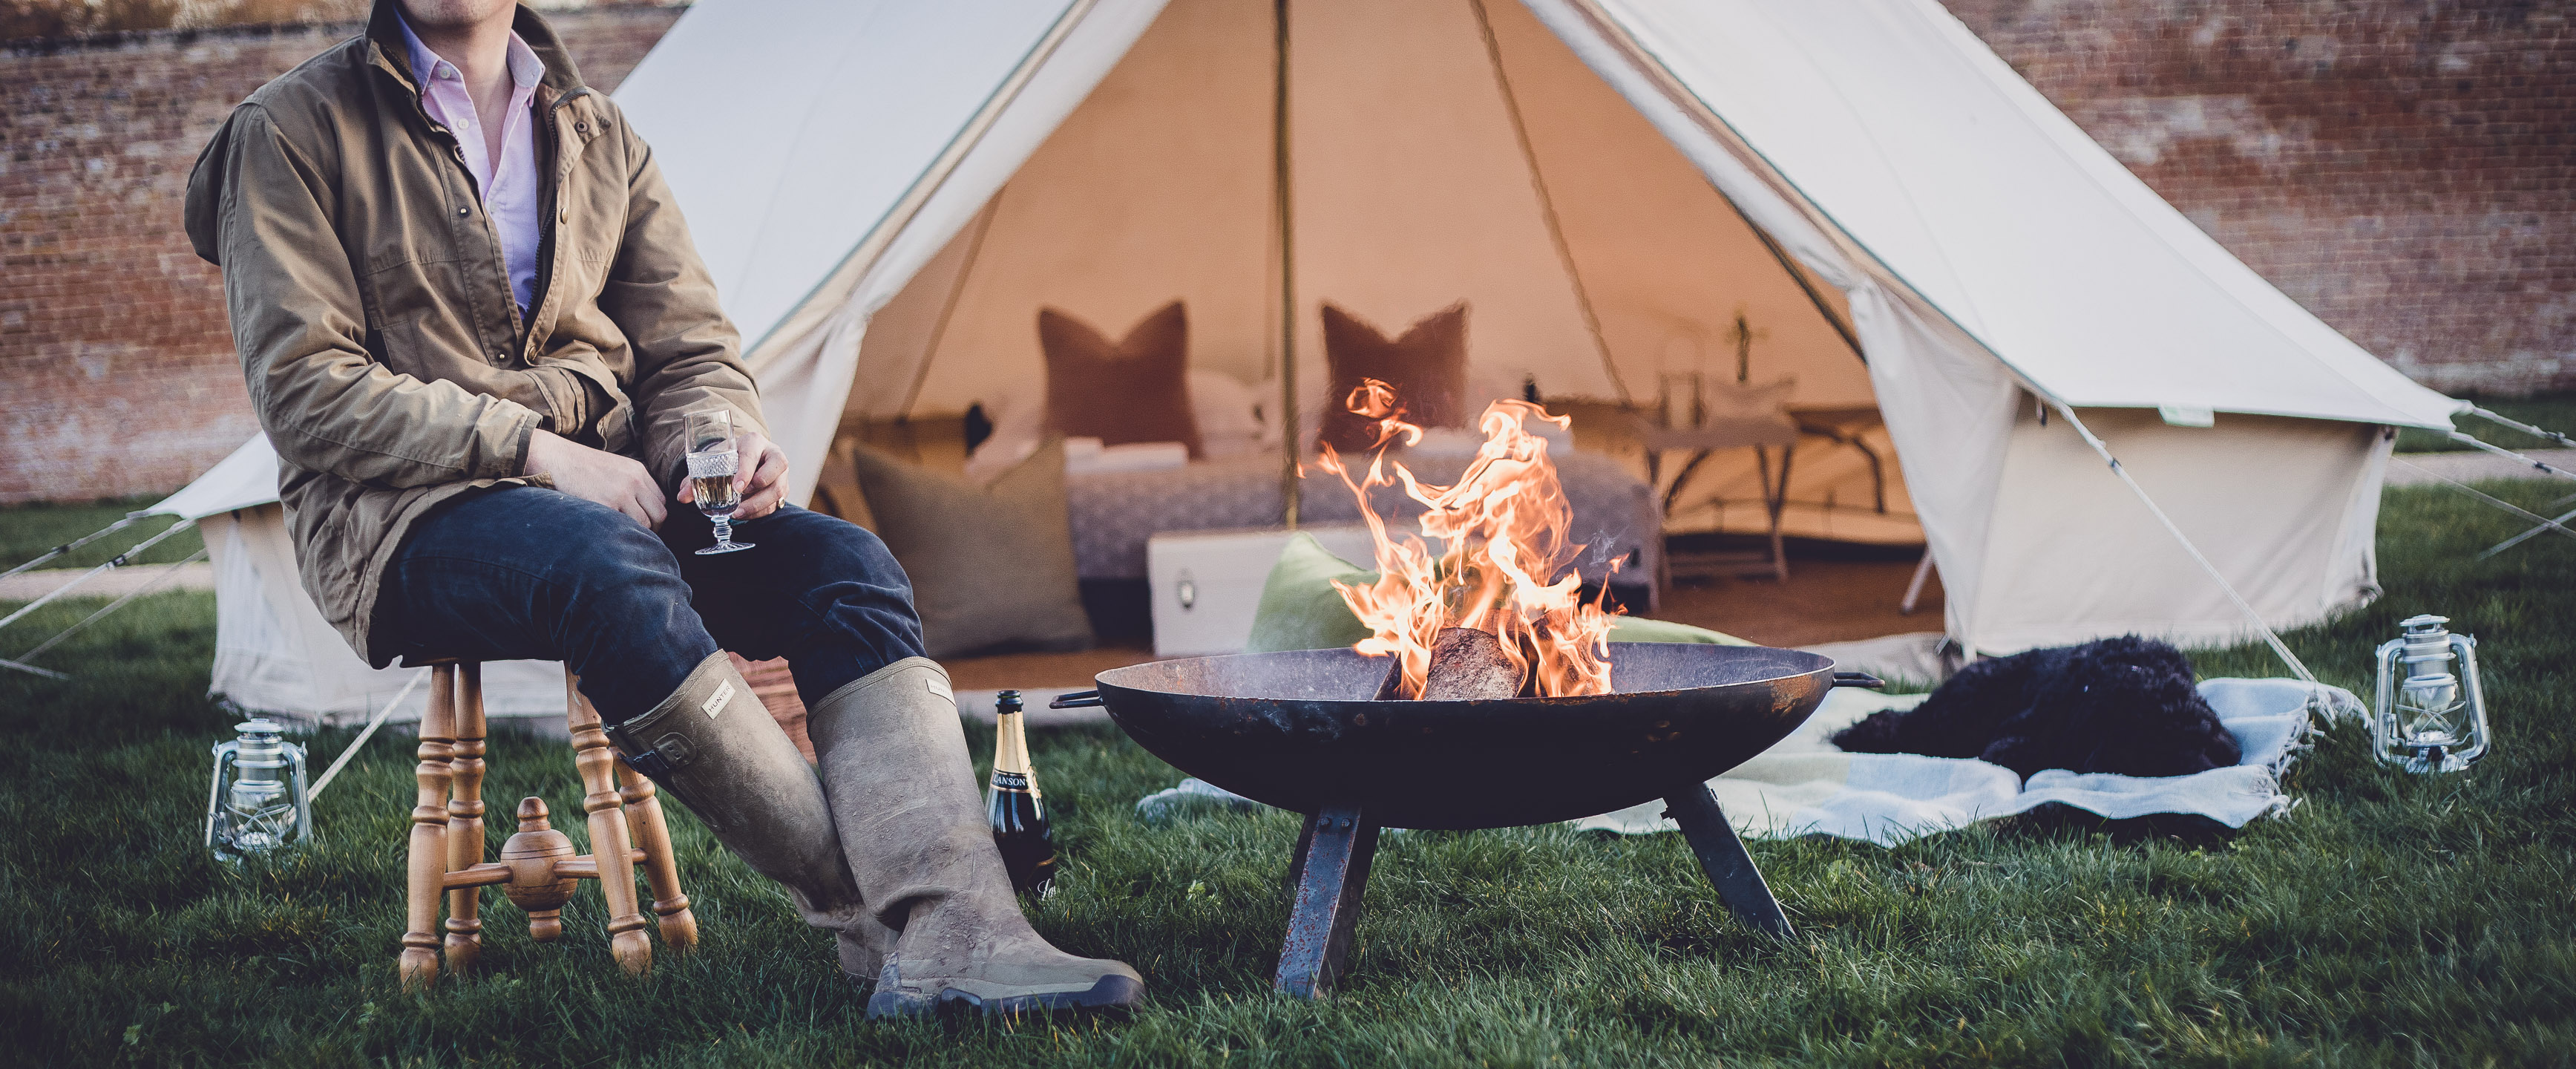 Glamping DIY: Taking a bit of interior chic with you when you're out and about this summer